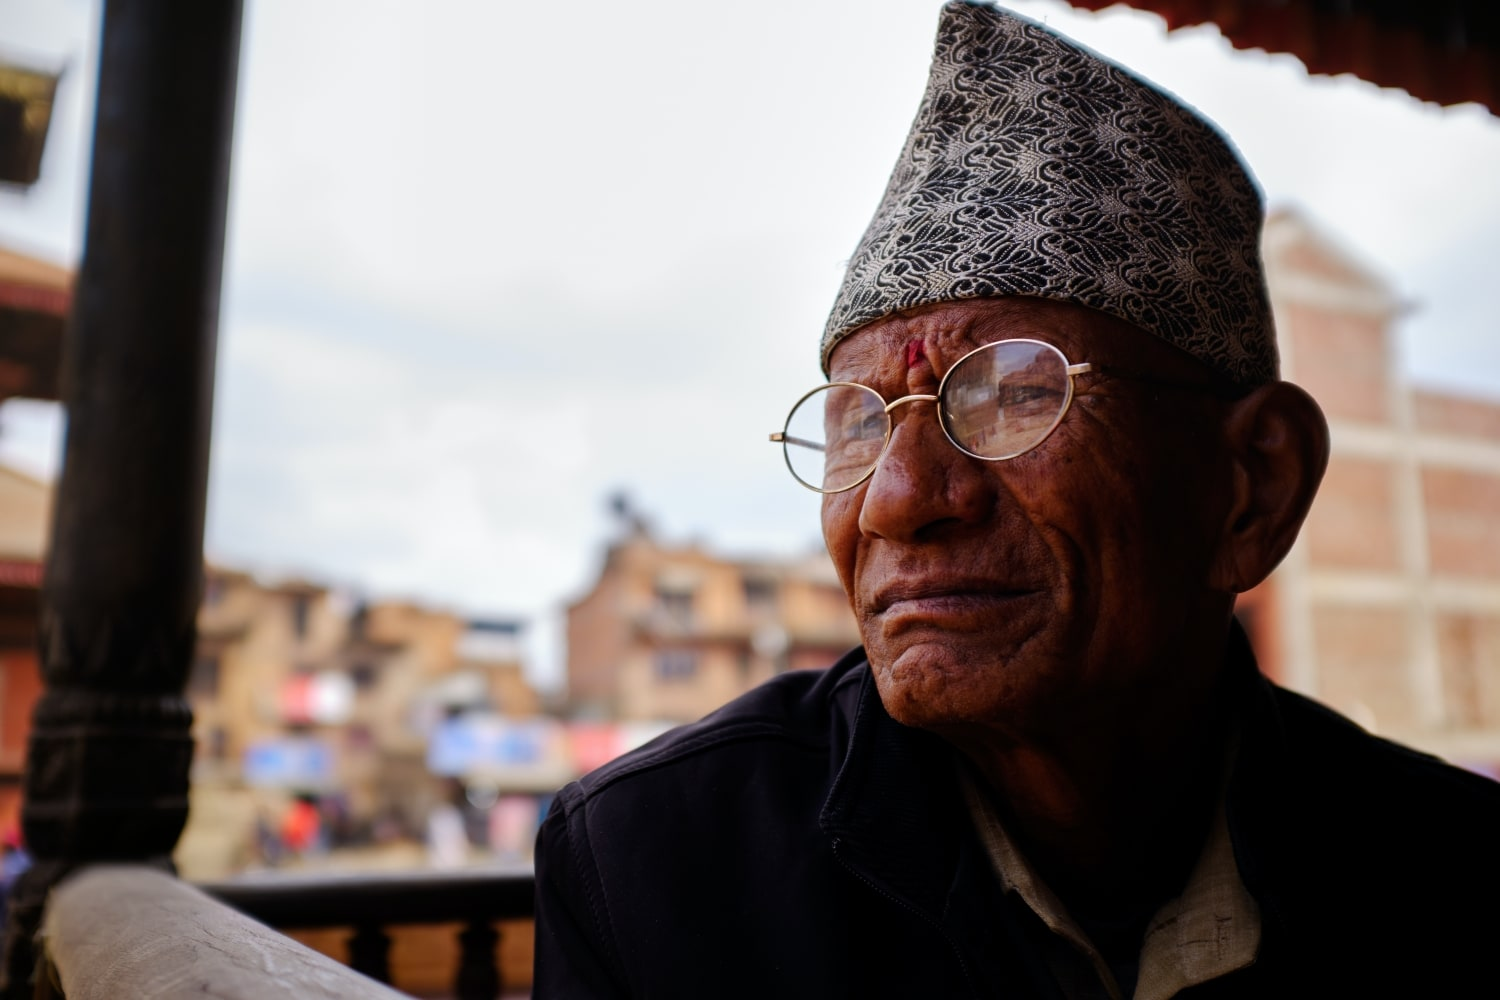 A man in Bhaktapur wearing Dhaka Topi